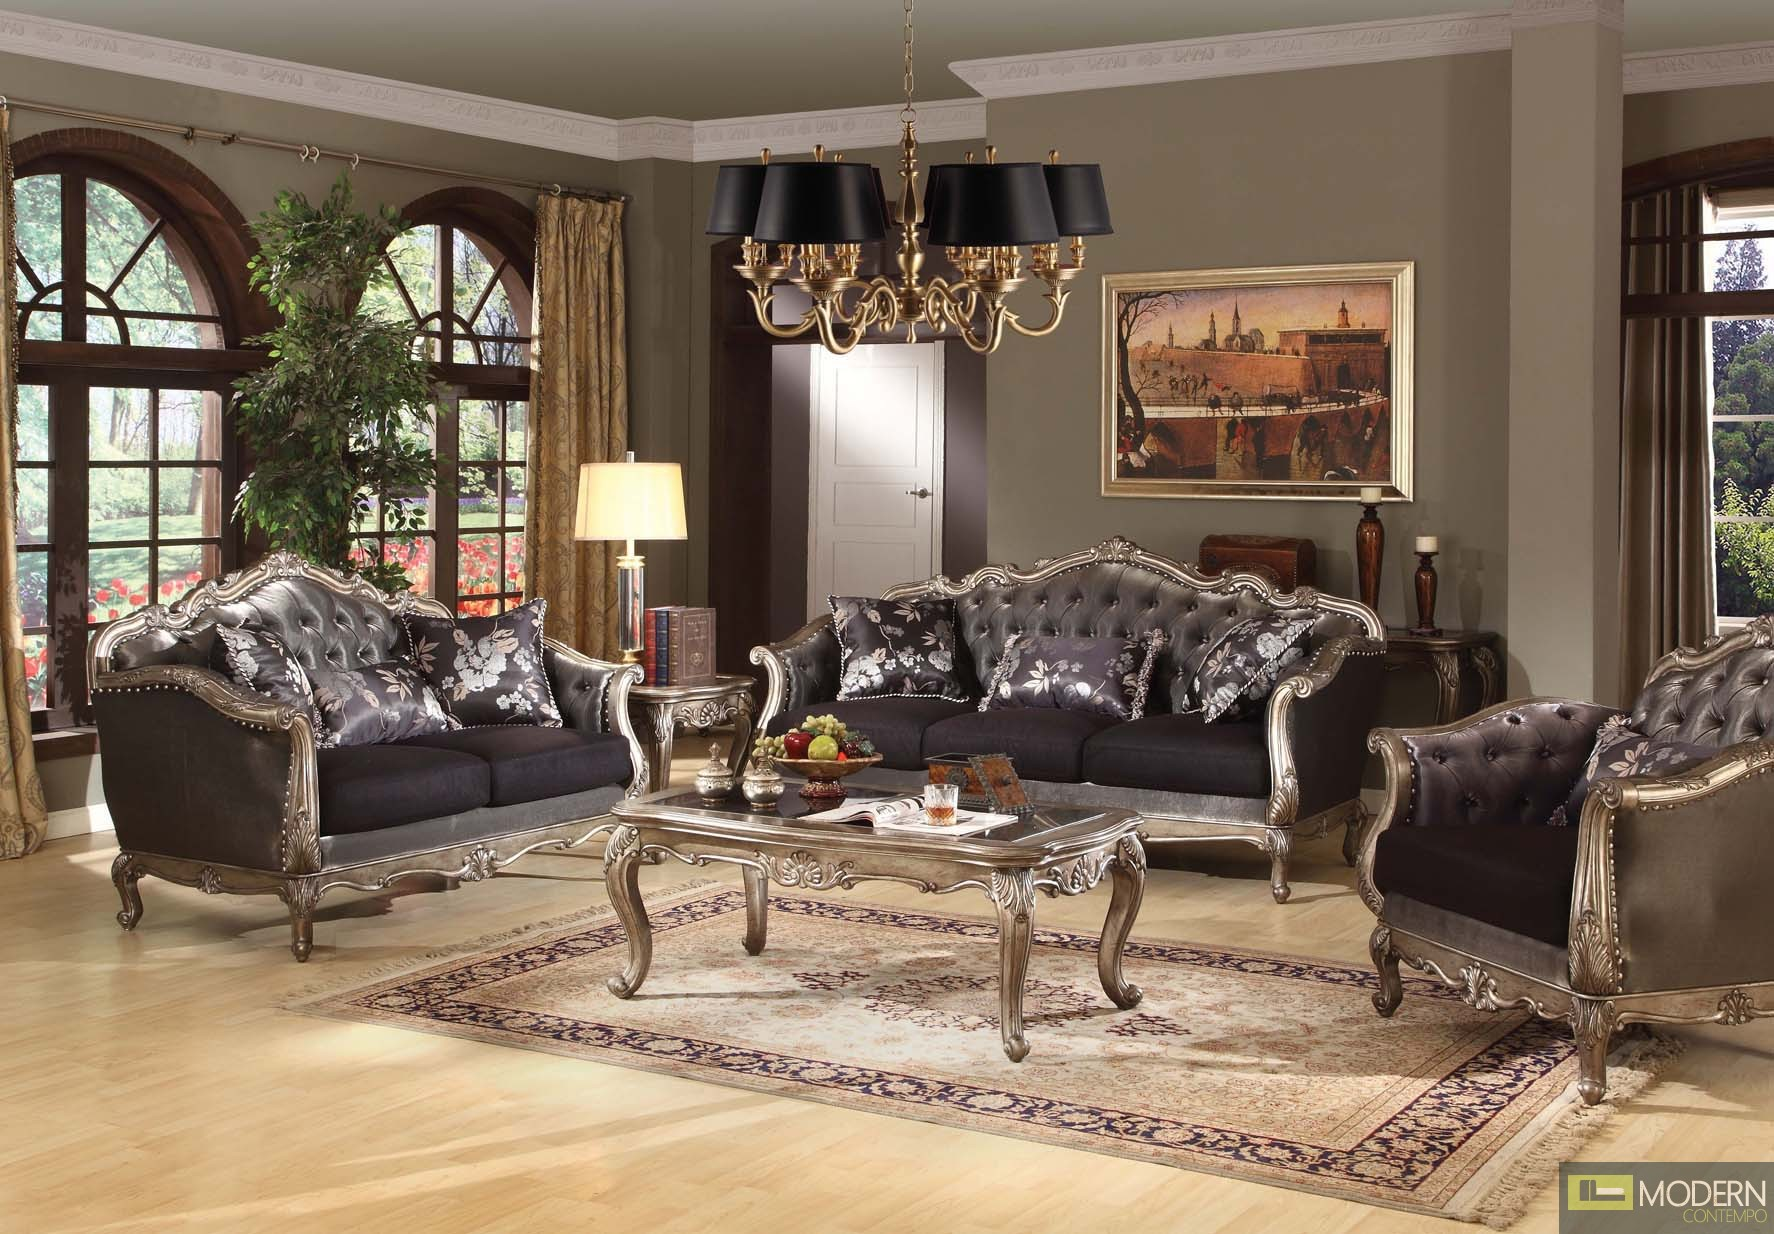 Modern Contempo French Rococo Luxury Sofa Traditional Living Room Set MCAC5